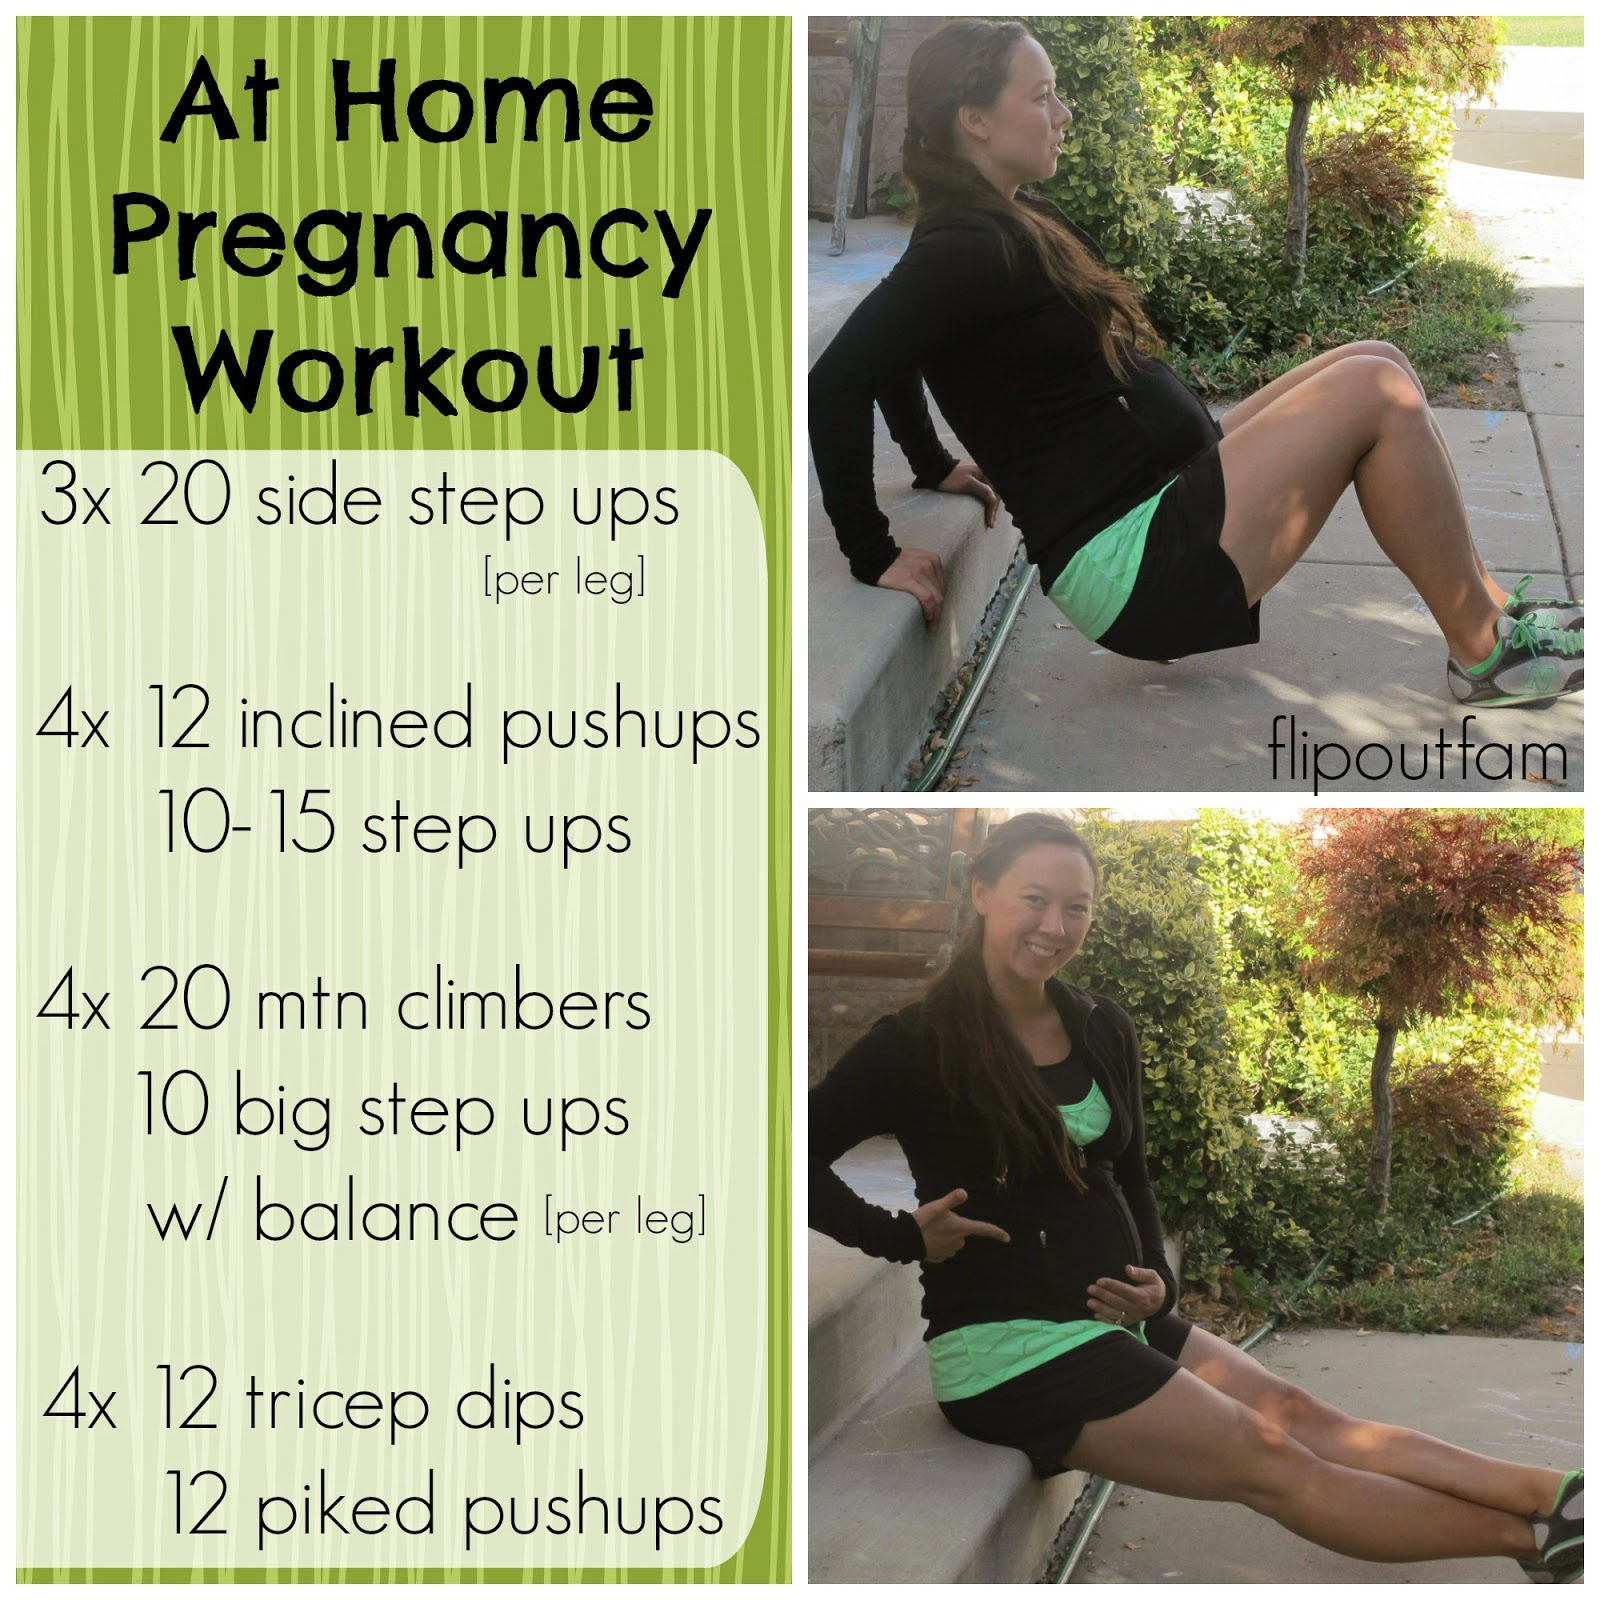 http://flipoutfam.blogspot.com/2014/10/at-home-pregnancy-work-out.html